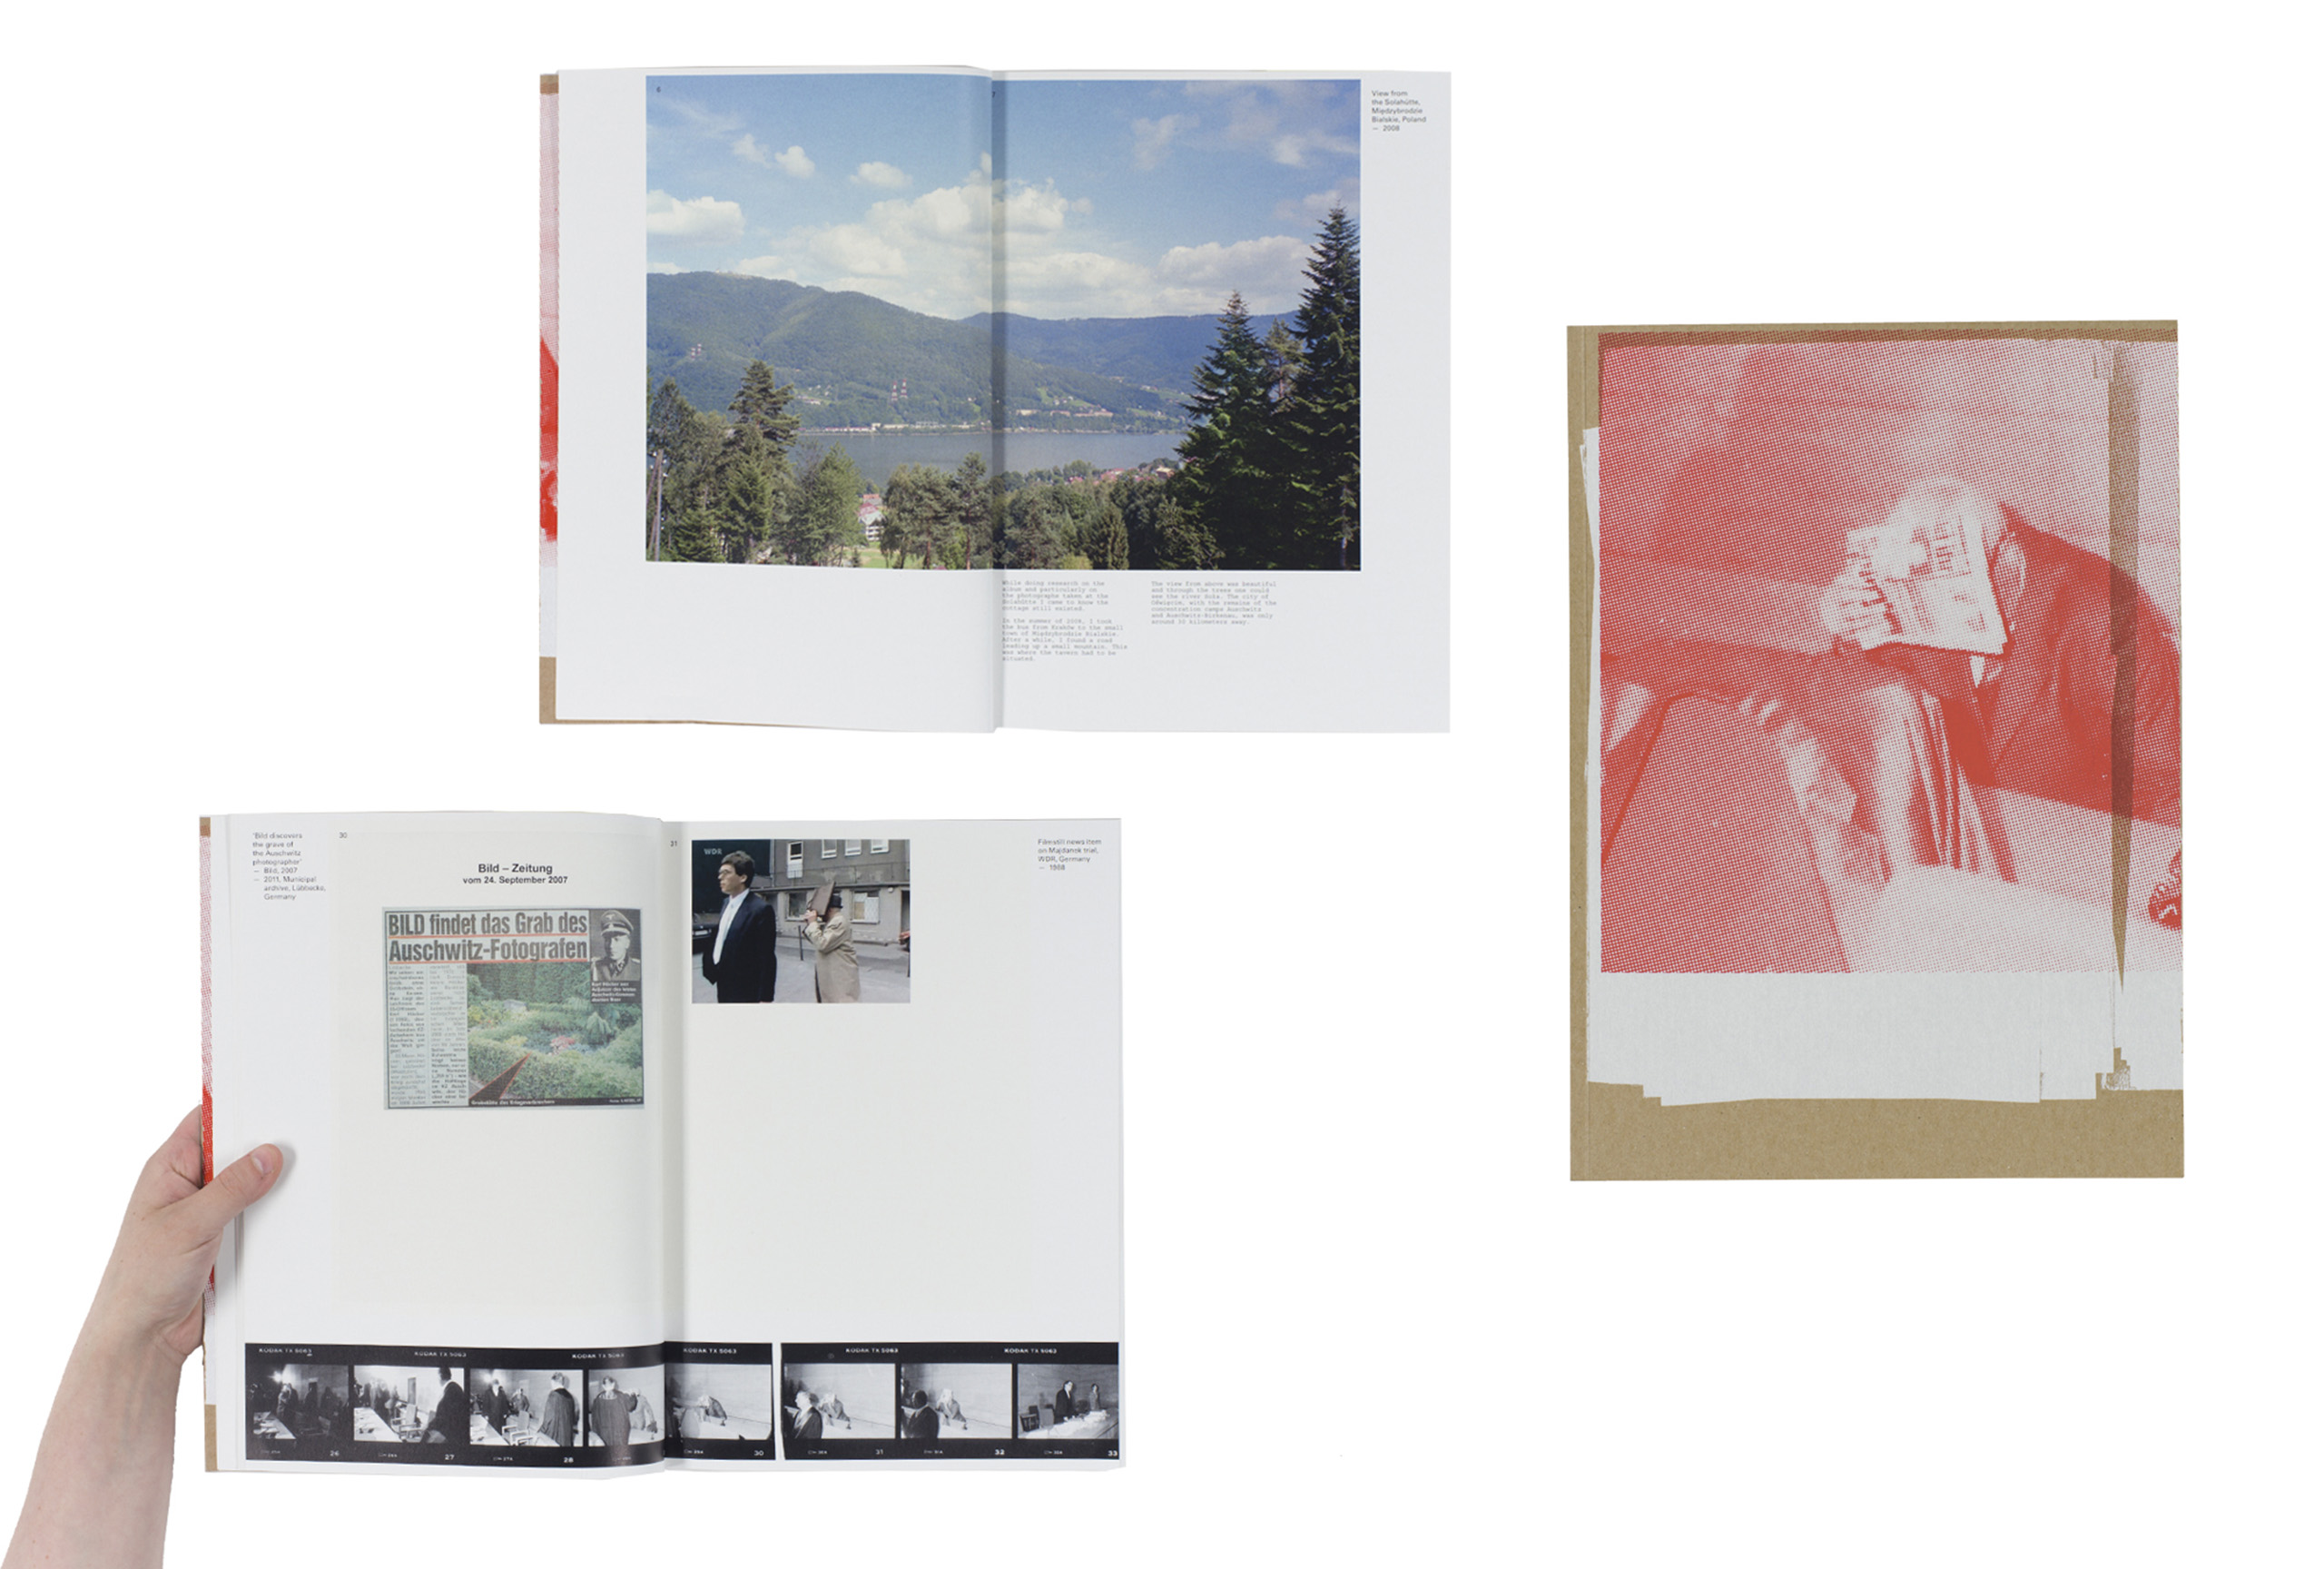 (in matters of) Karl by Annette Behrens, published by Fw:Books. Short-listed title for First PhotoBook.